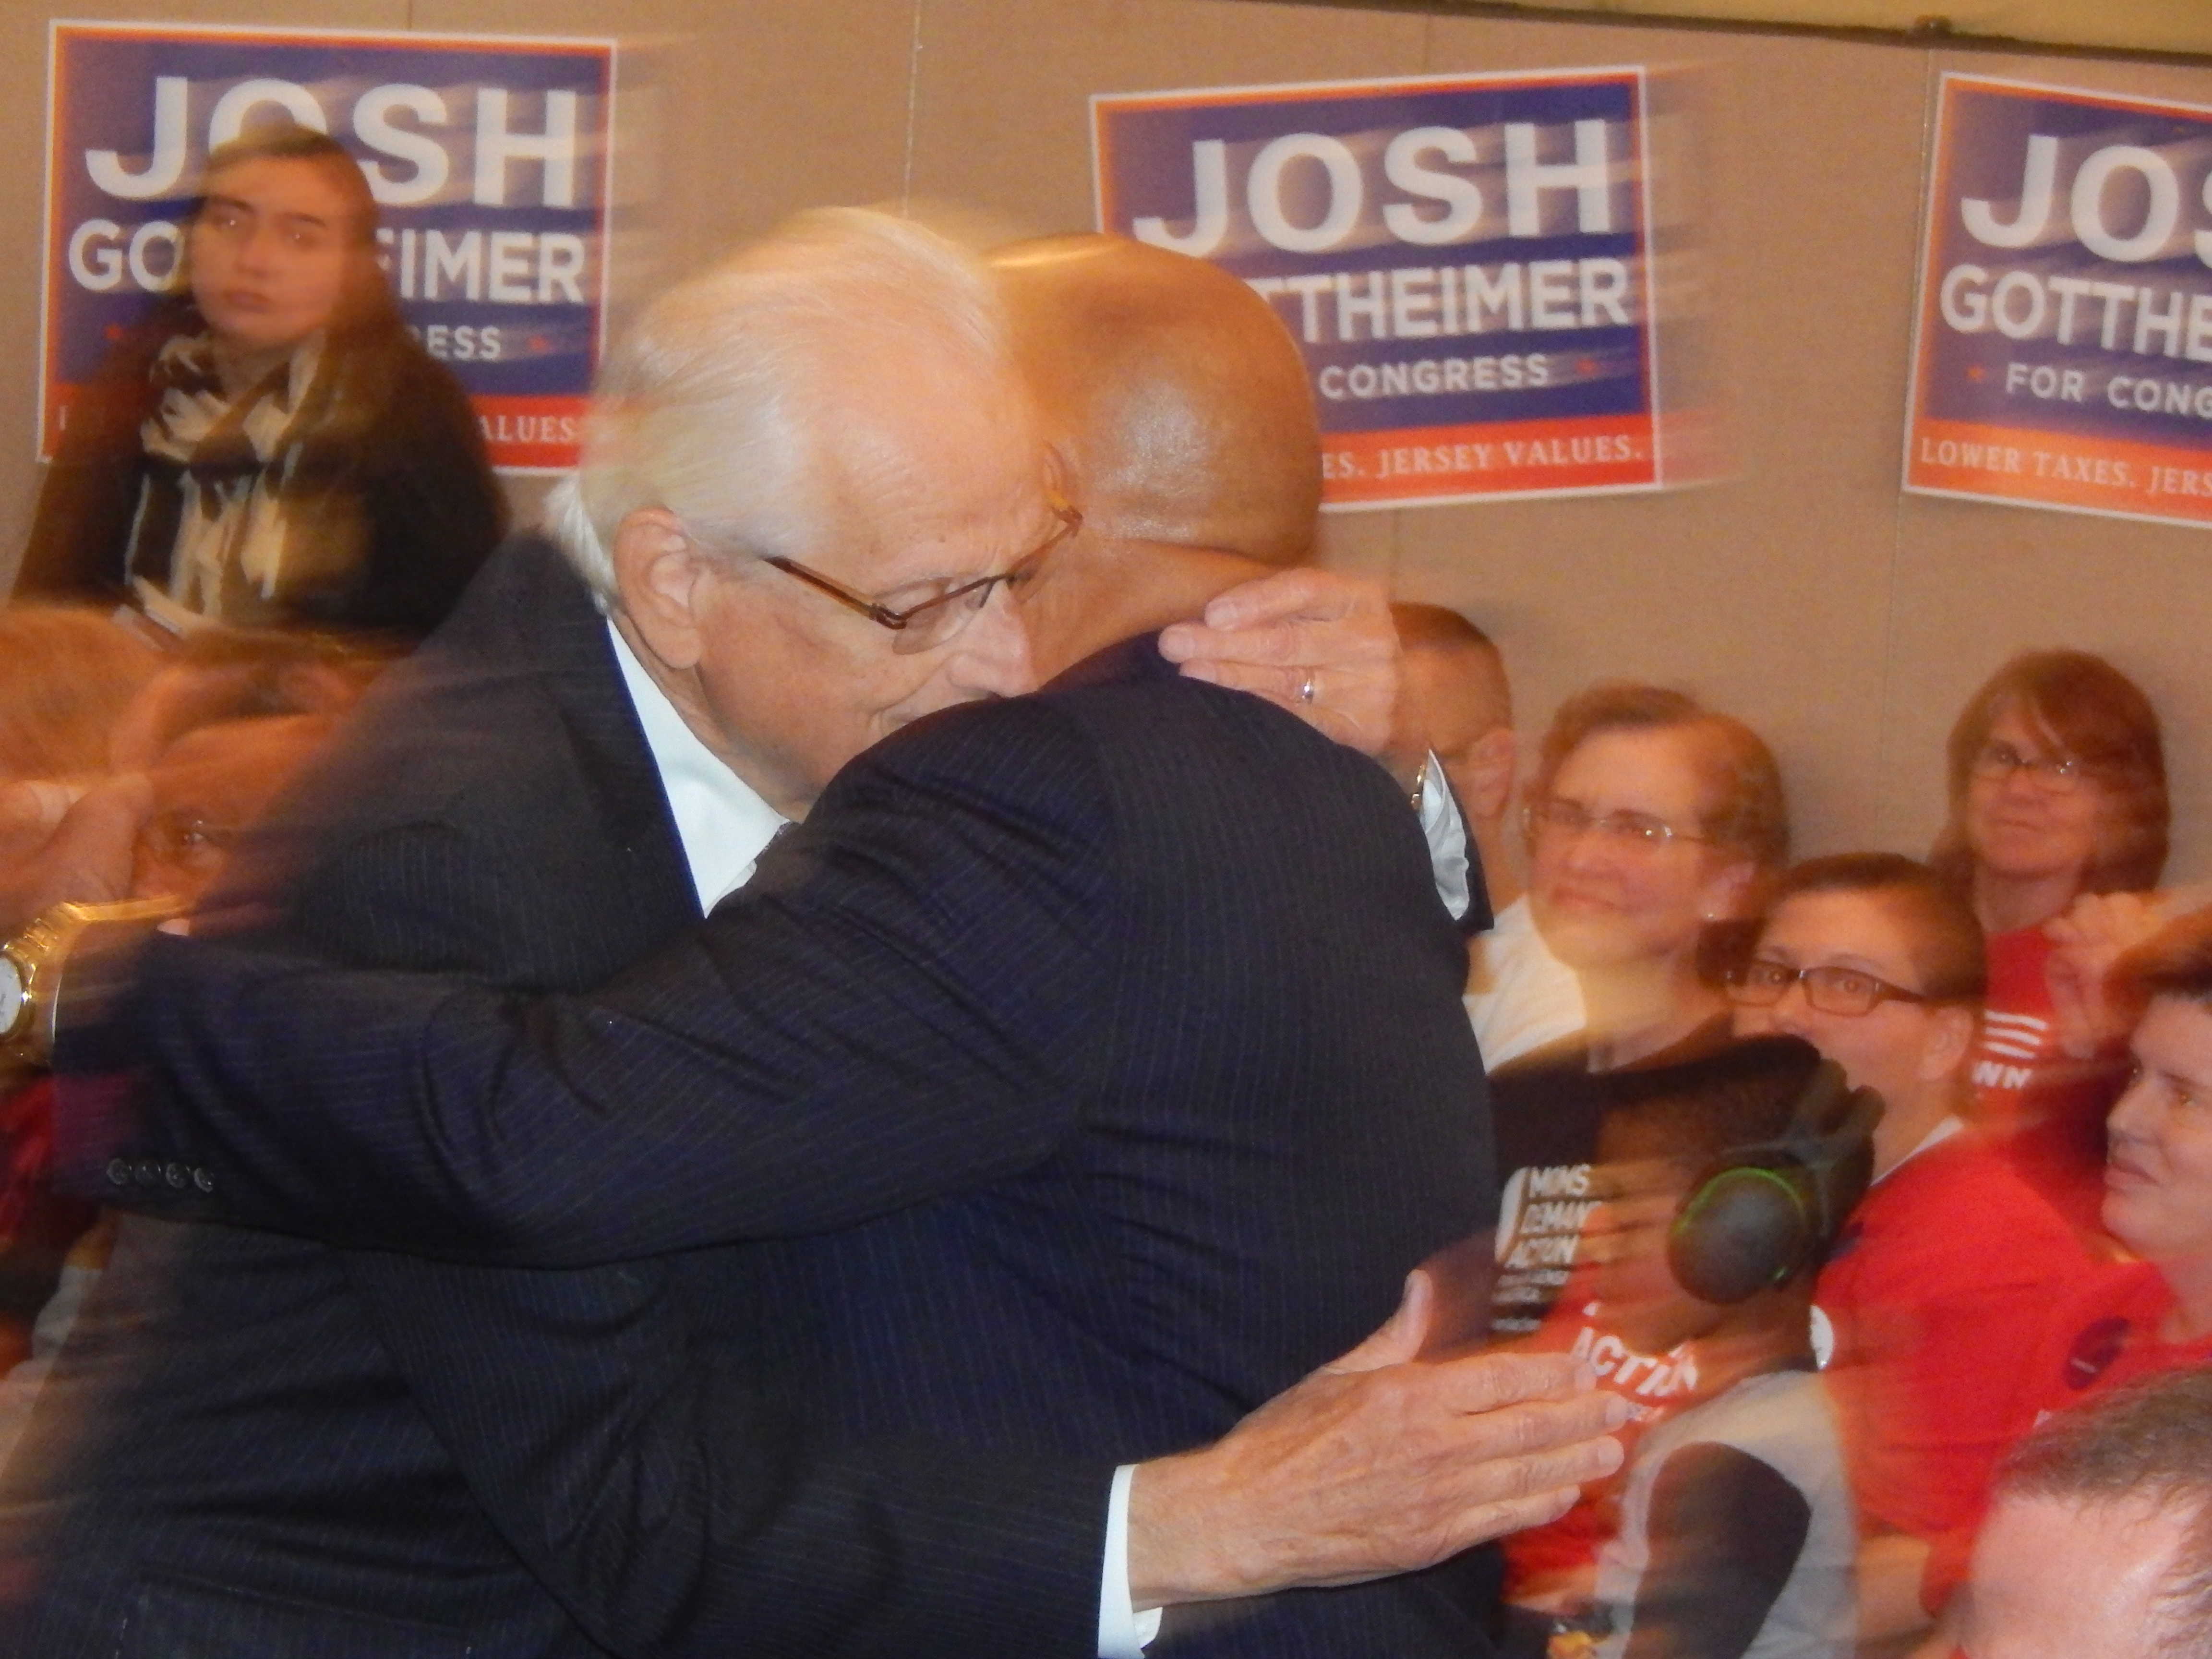 Pascrell and Lewis embrace after the Paterson congressman's remarks.